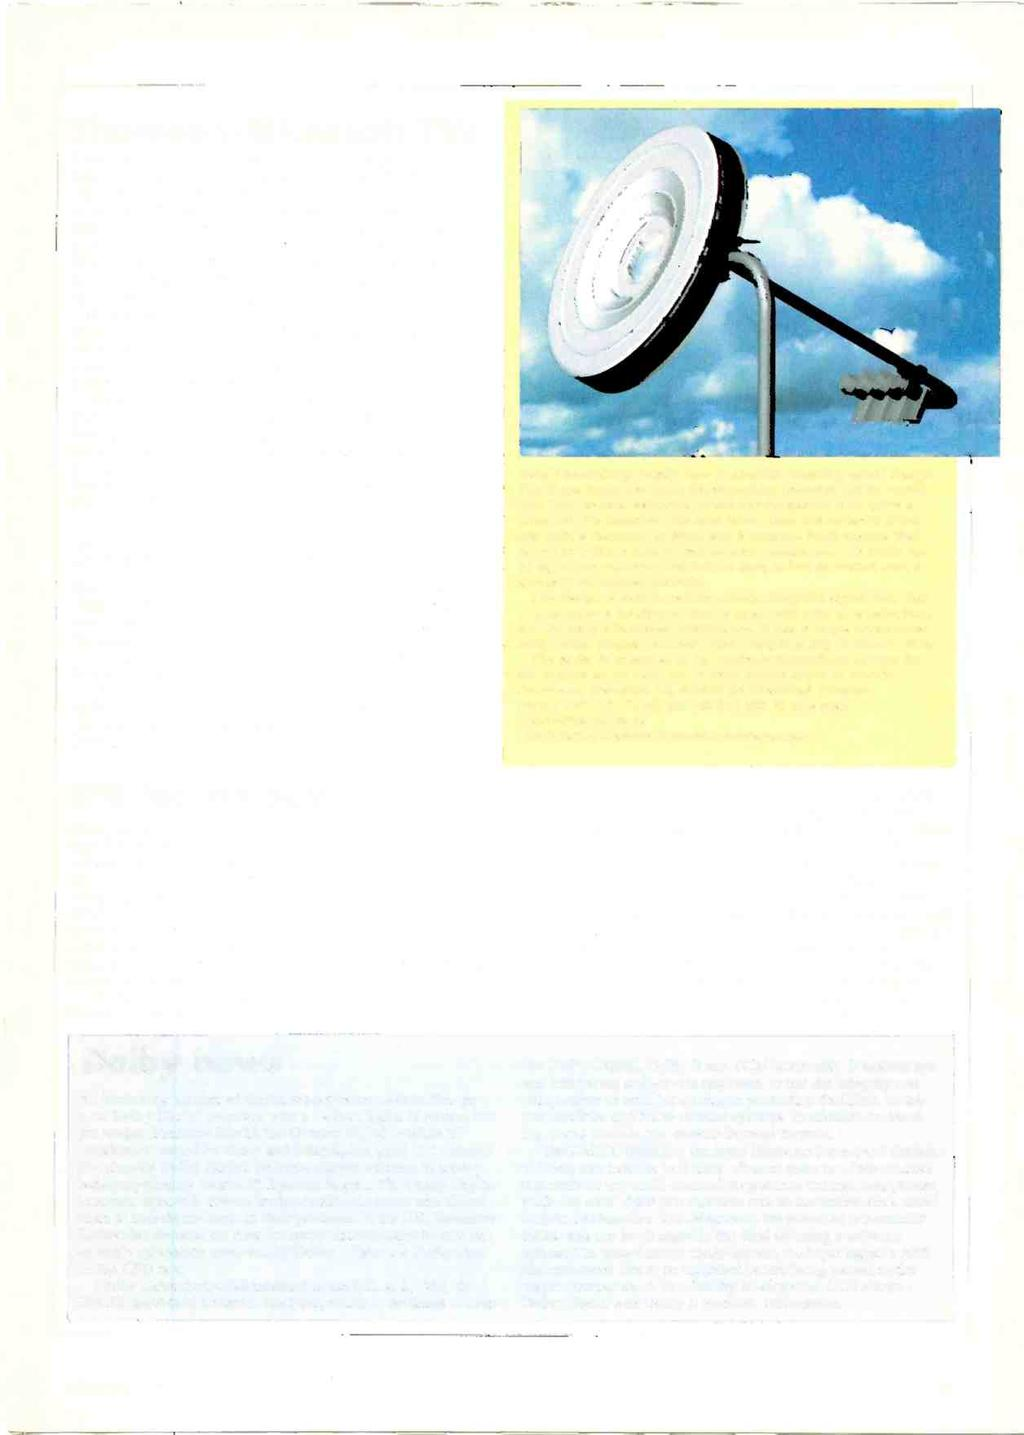 27f506c7dd NIOS TECHNOLOGY MAGAZINE FEBRUARY Rim. ard. PC klon kors and RI ...